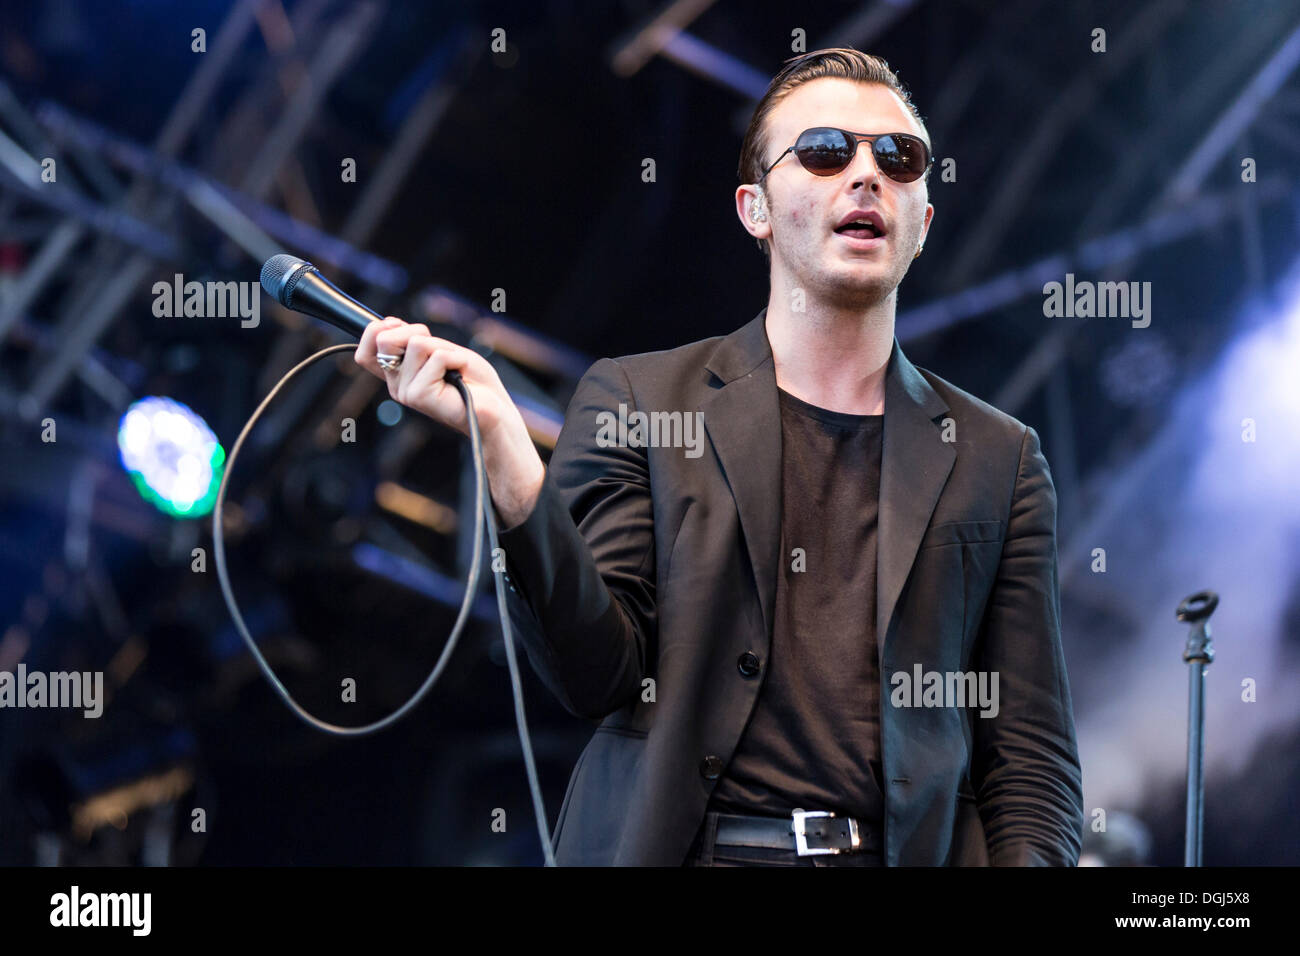 Singer Theo Hutchcraft from the British synth-pop band Hurts performing live at Heitere Open Air in Zofingen, Aargau - Stock Image